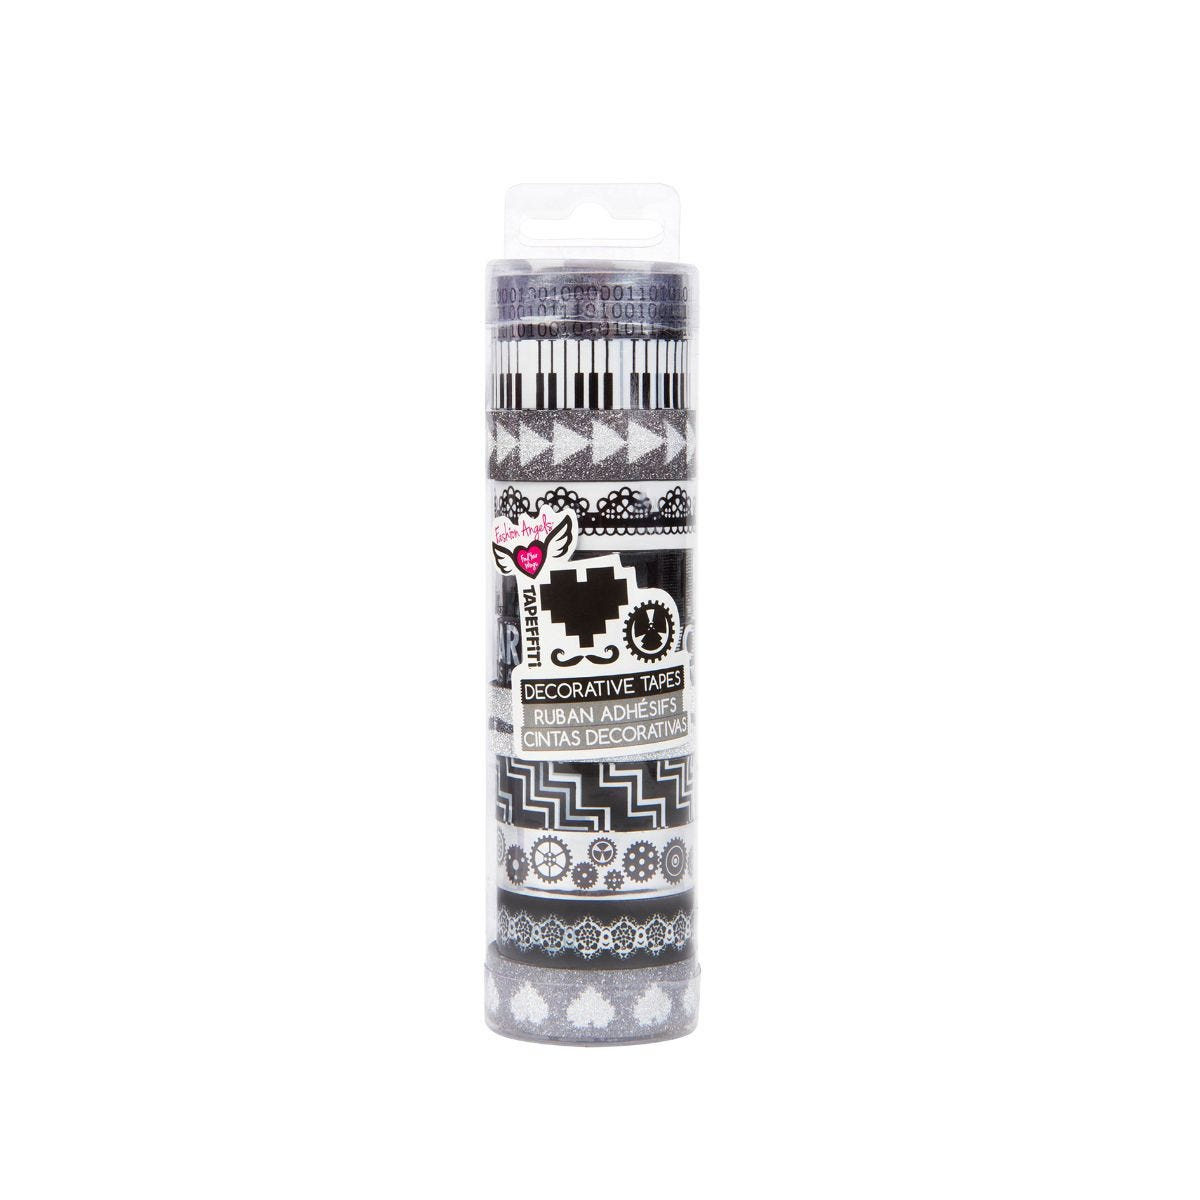 fashion angels tapeffiti tube black and white pack of 11 tapes, black/white